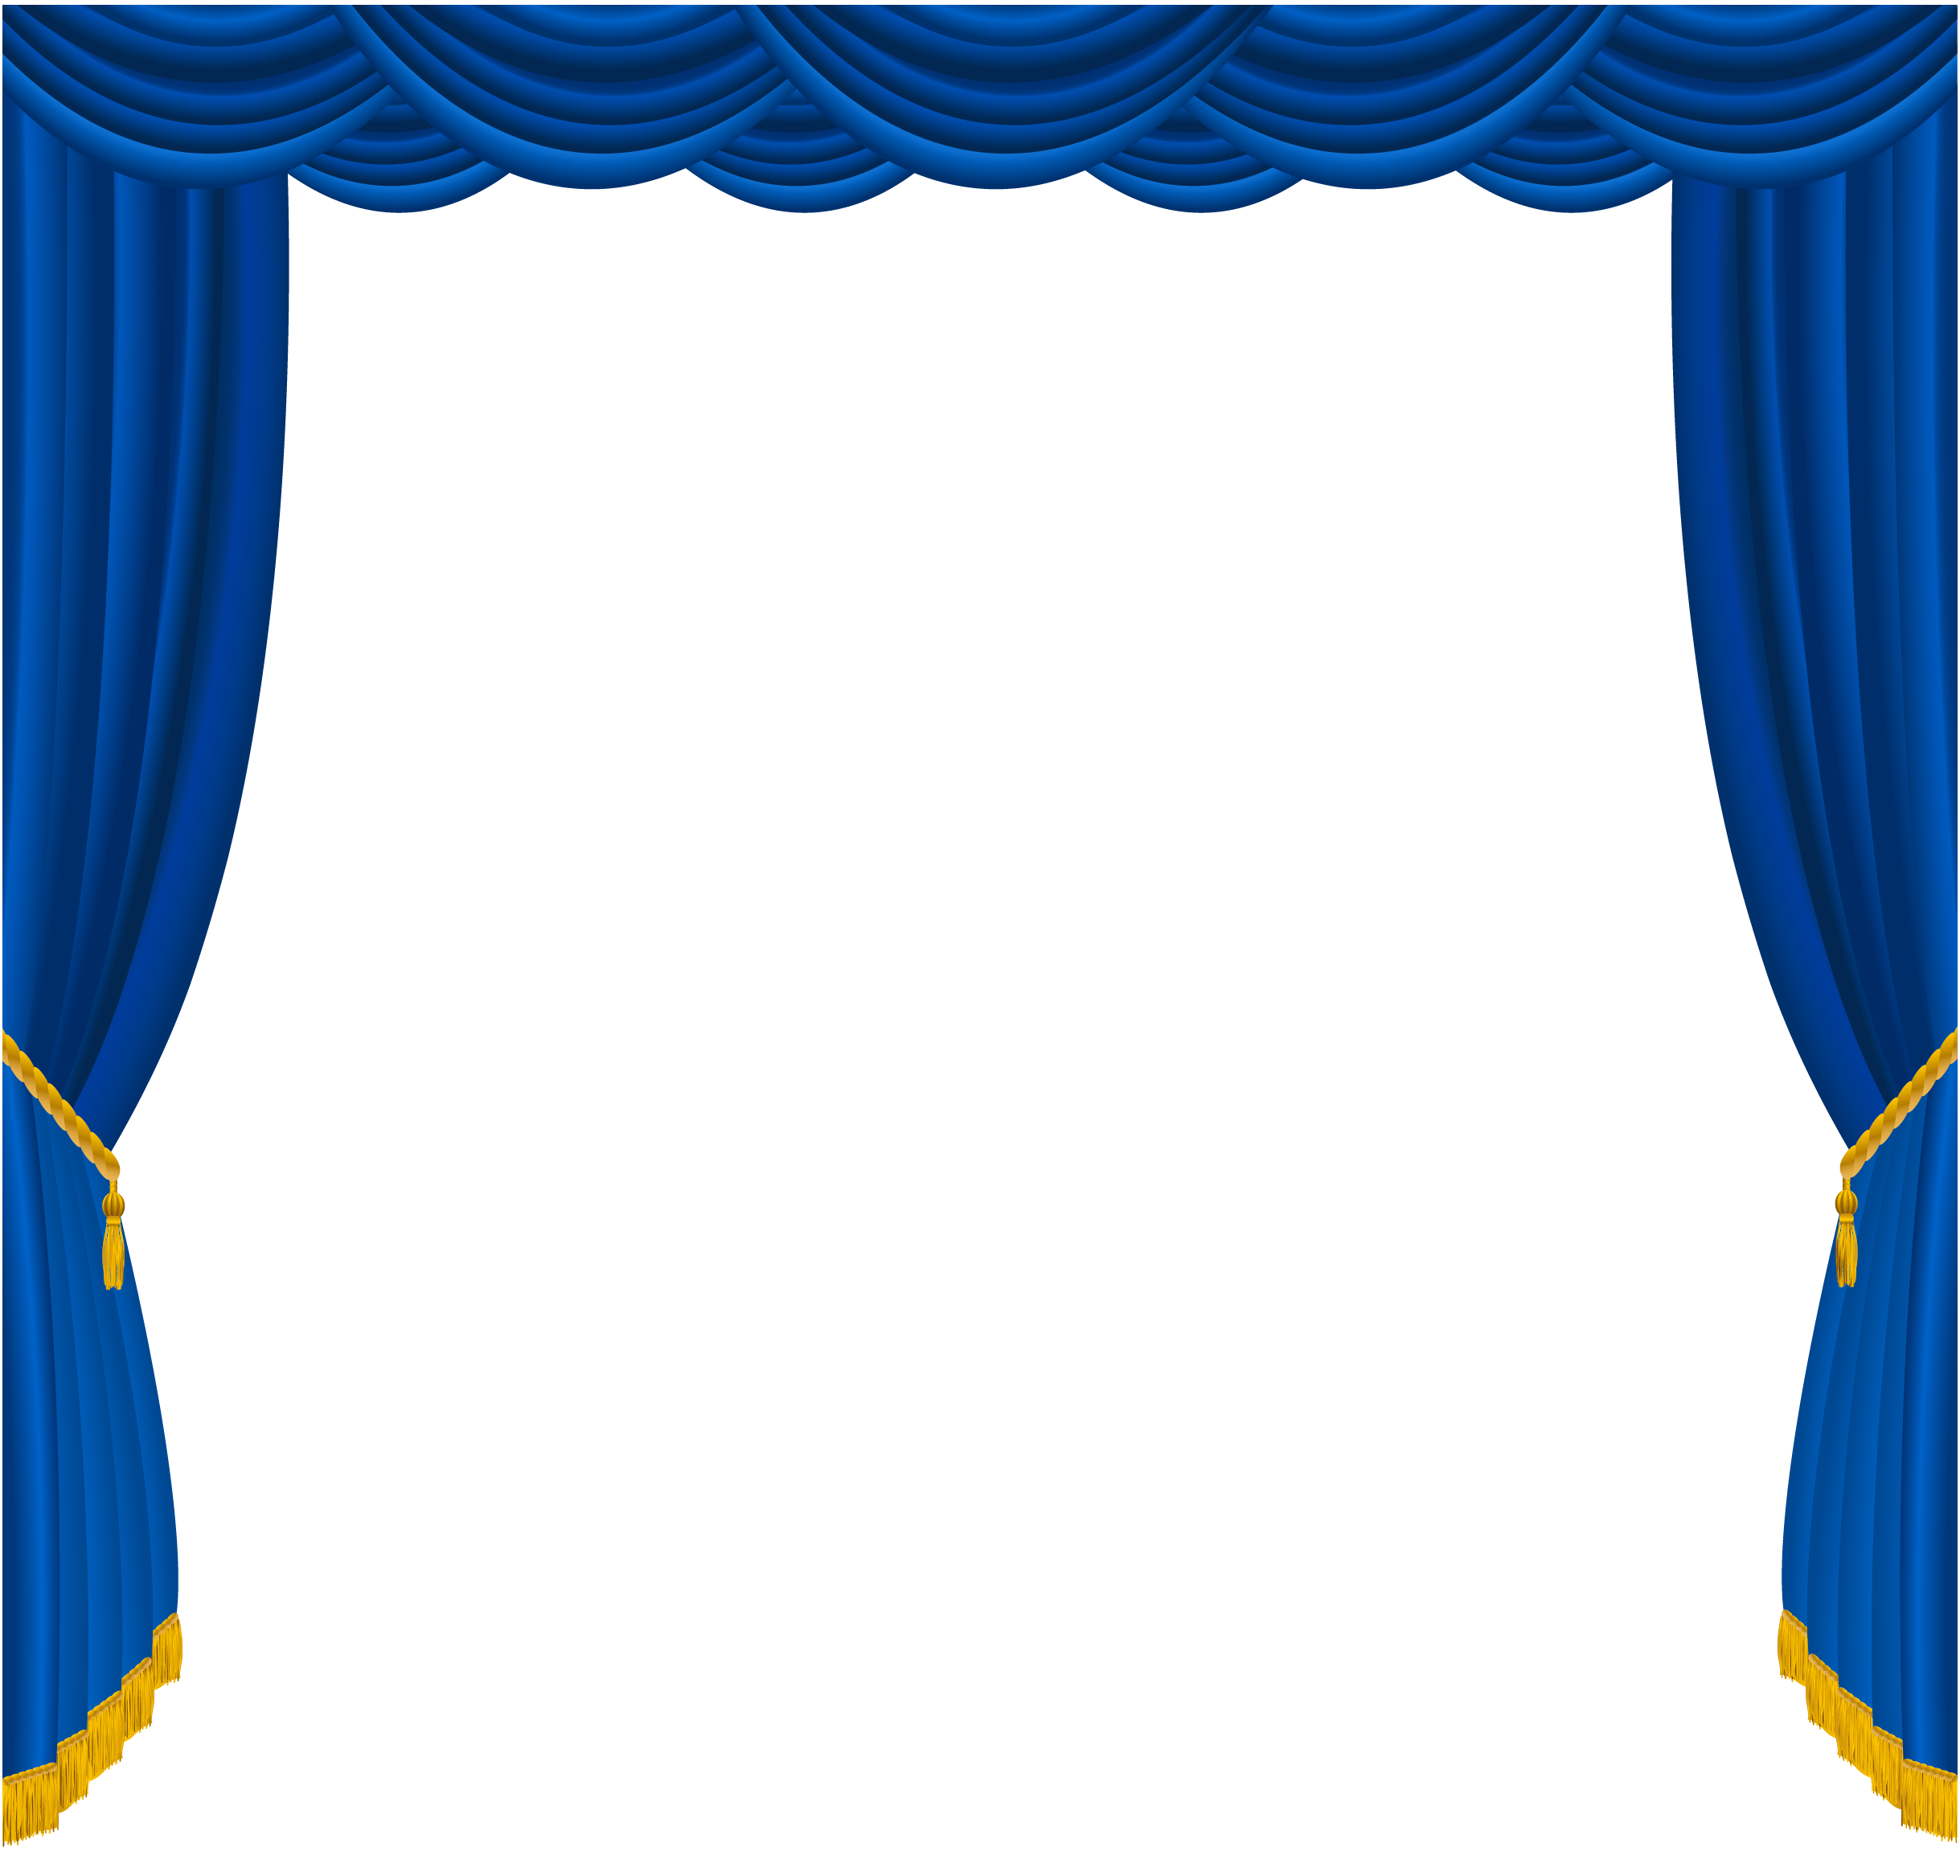 Stage clipart blue curtain. Transparent curtains decor png